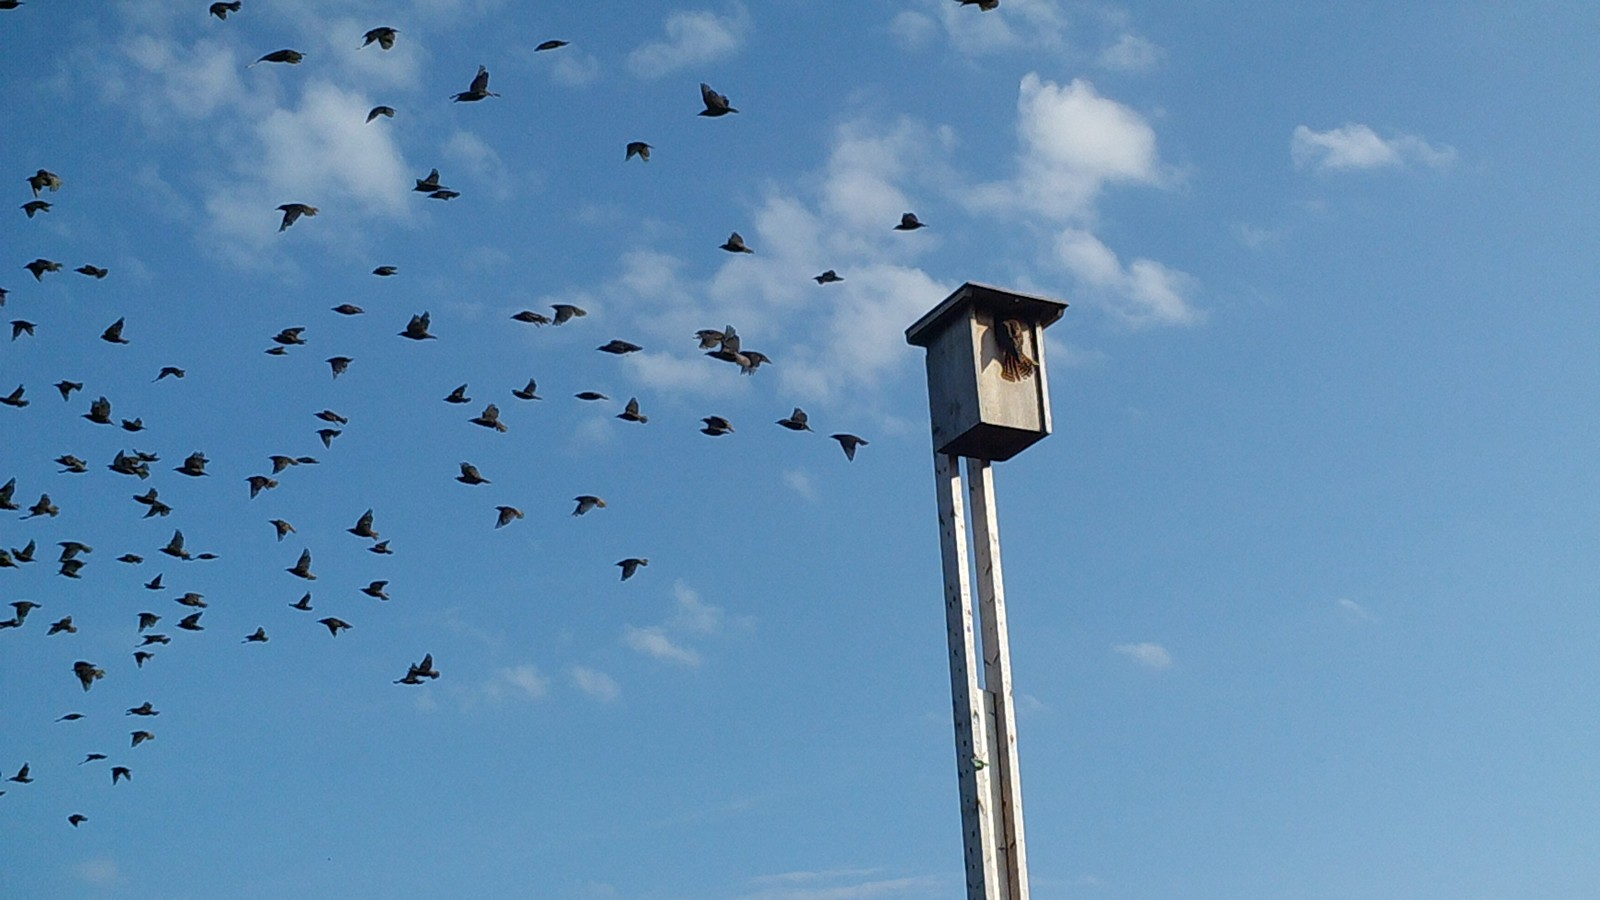 A flock of starlings take off as a kestrel arrives back at its nest box at one of the research trial sites.